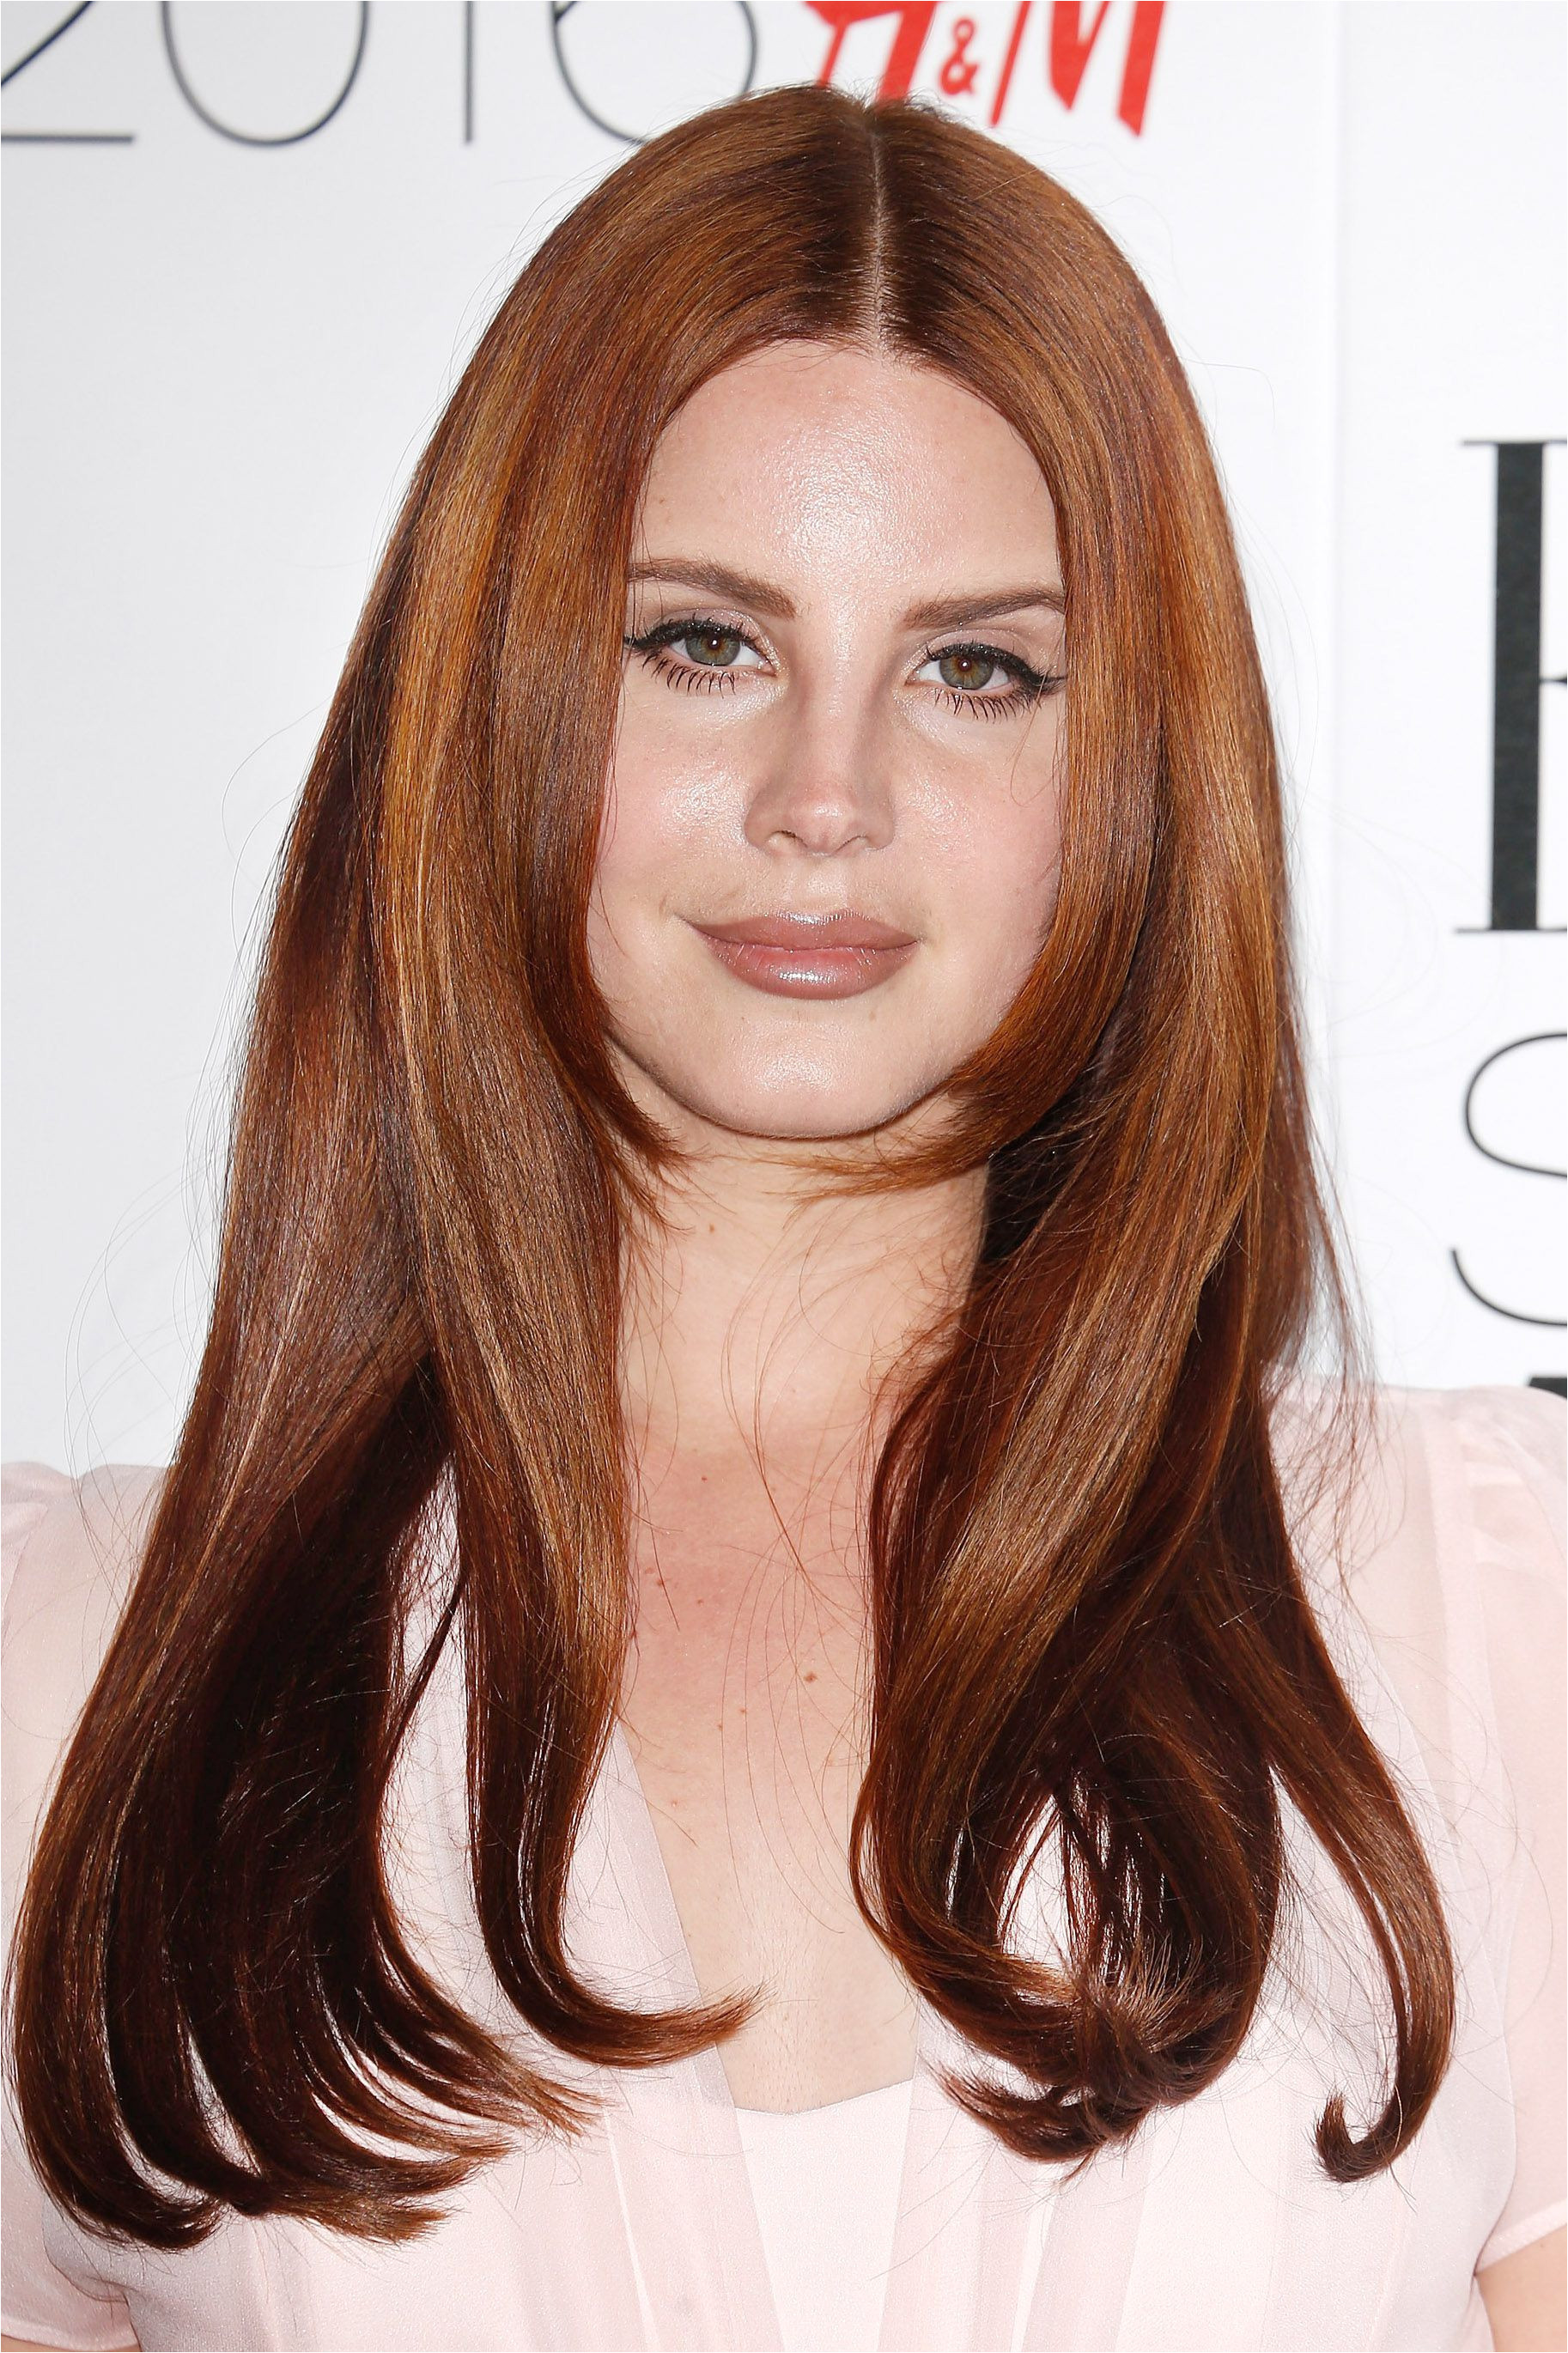 Dyed Hair Trends and Hair Dye Styles Beautiful I Pinimg 1200x 0d 60 Luxury What Hairstyle